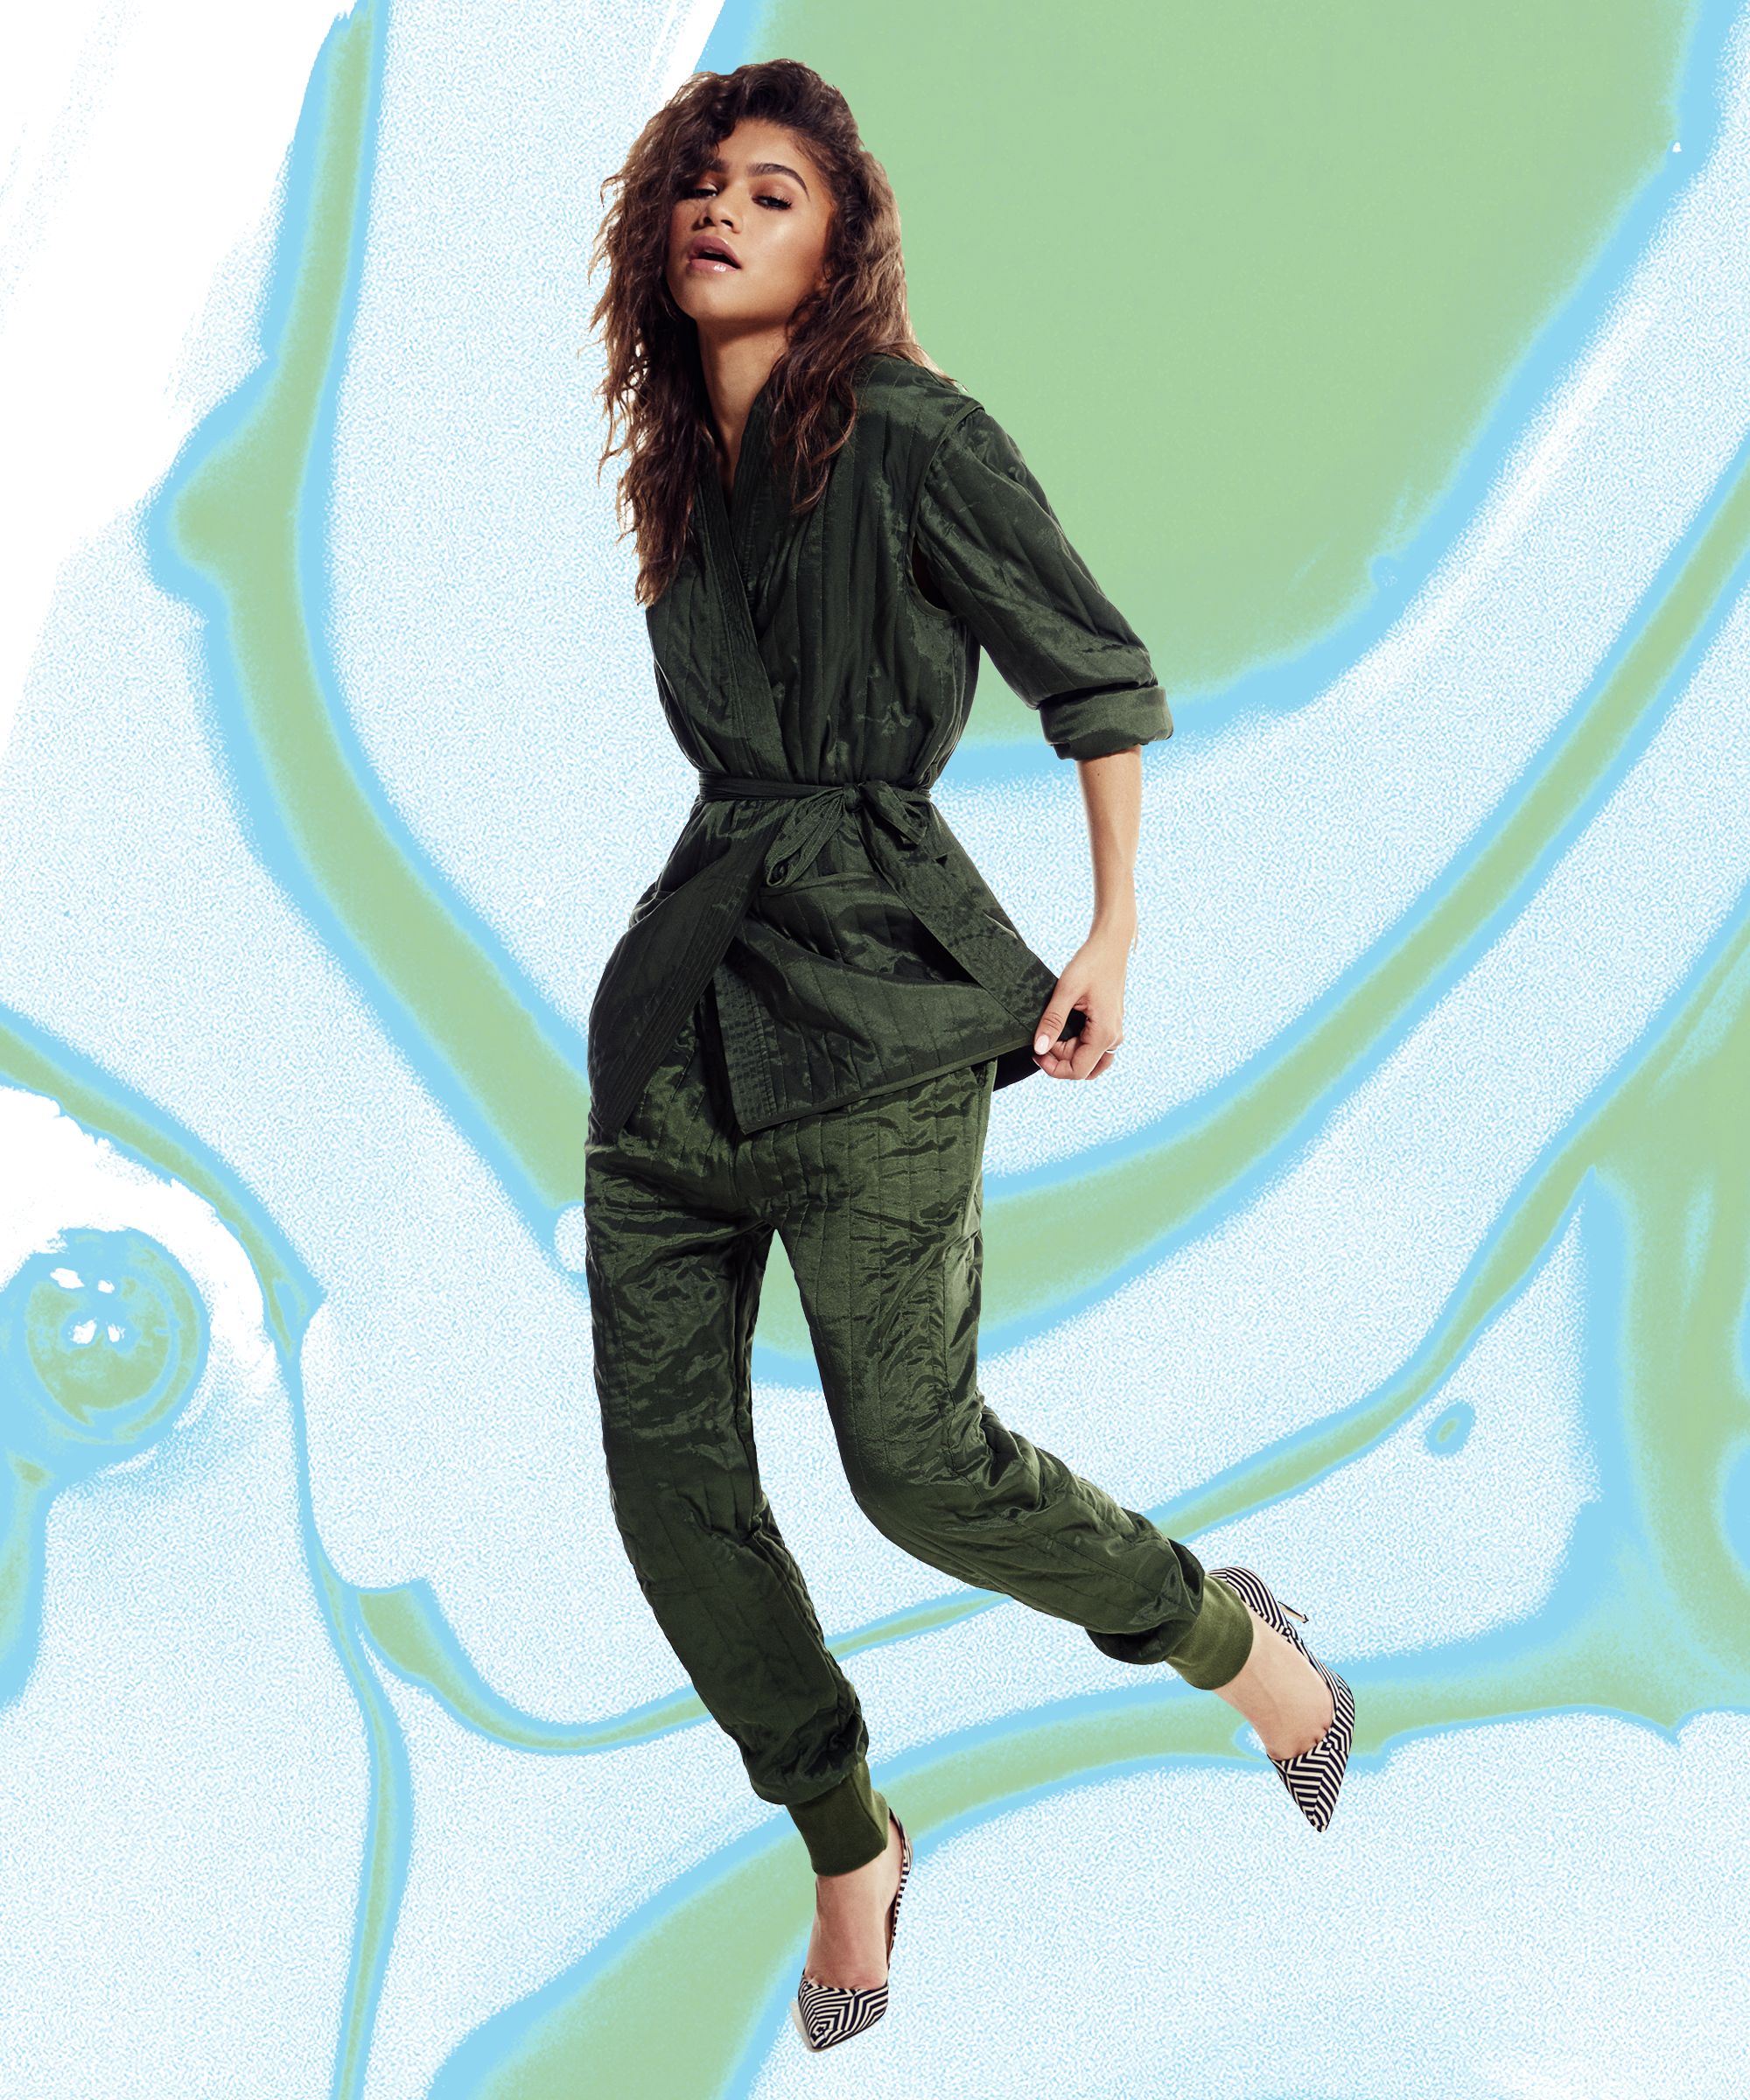 f0ce0702e173e Finally, We Can Live Out Our Fantasy Of Dressing Like Zendaya